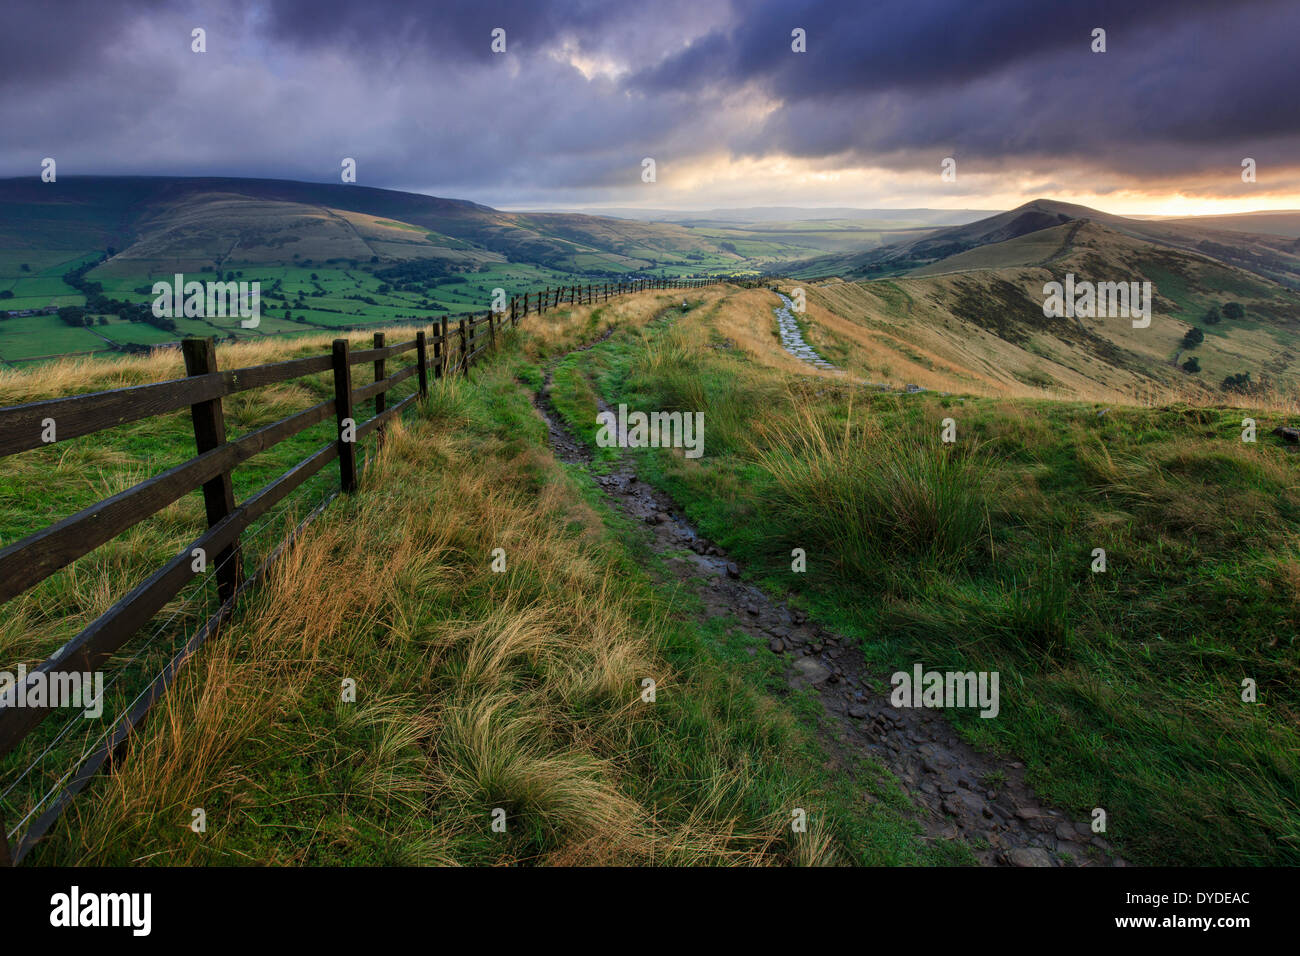 Sonnenaufgang am Mam Tor im Peak District. Stockbild